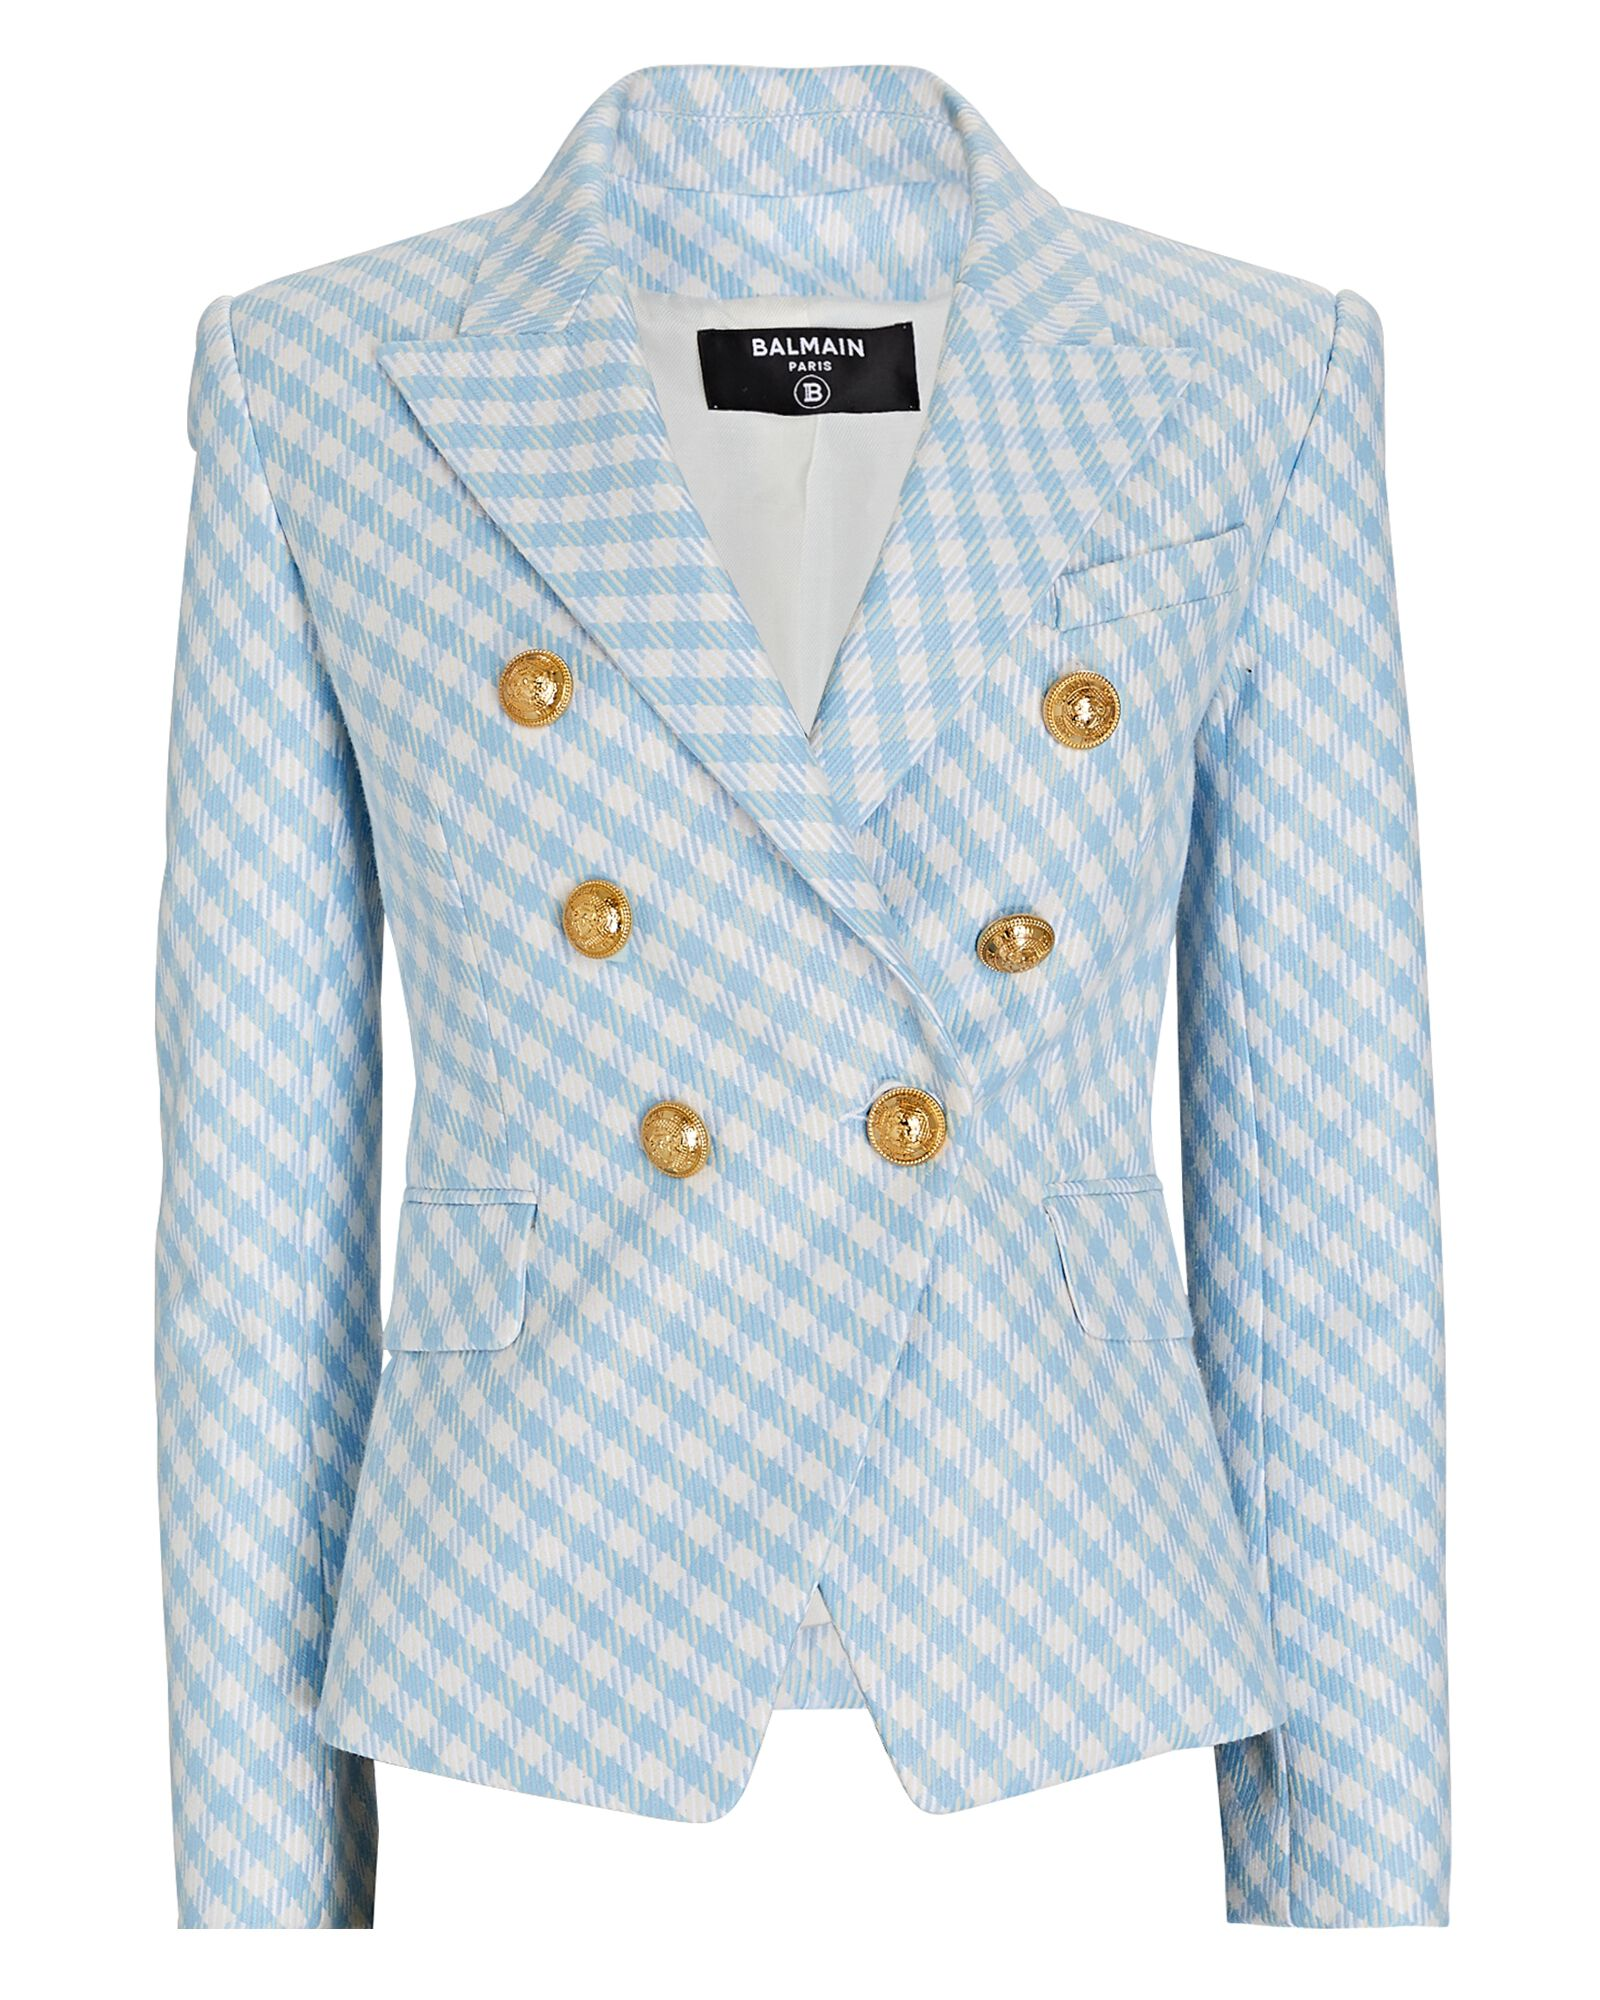 Gingham Double-Breasted Blazer, BLUE/WHITE, hi-res